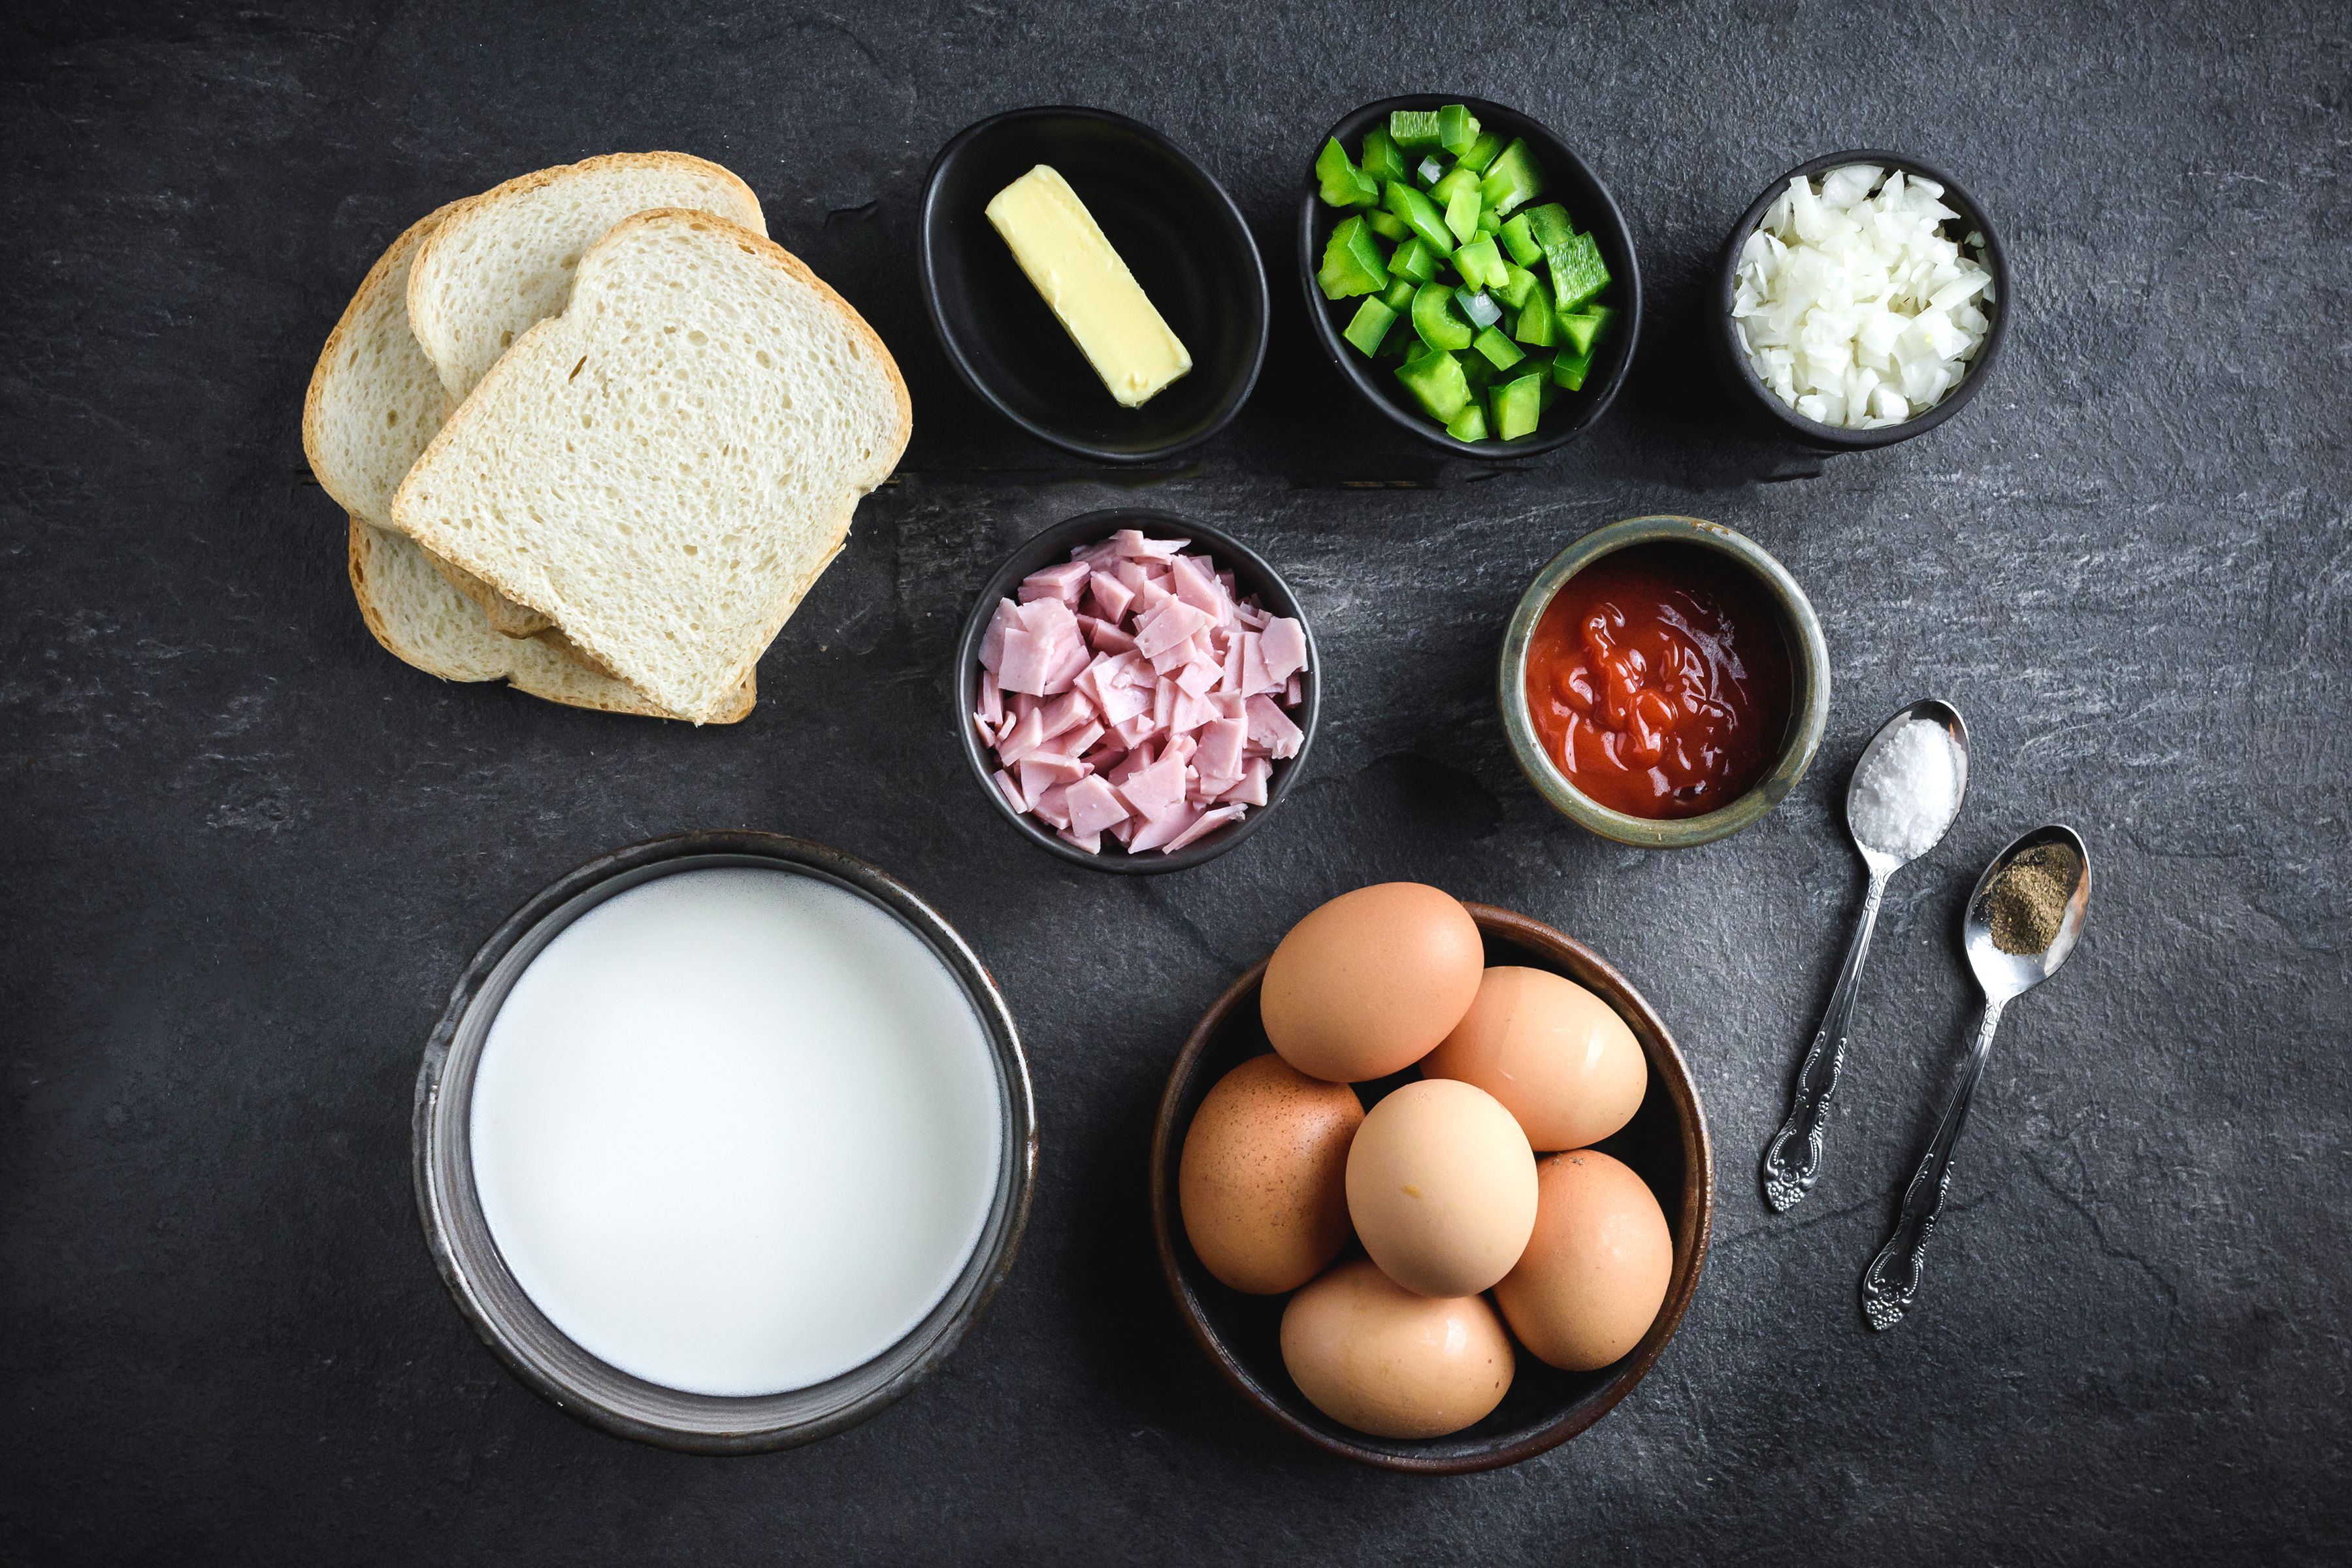 Ingredients for Western omelet